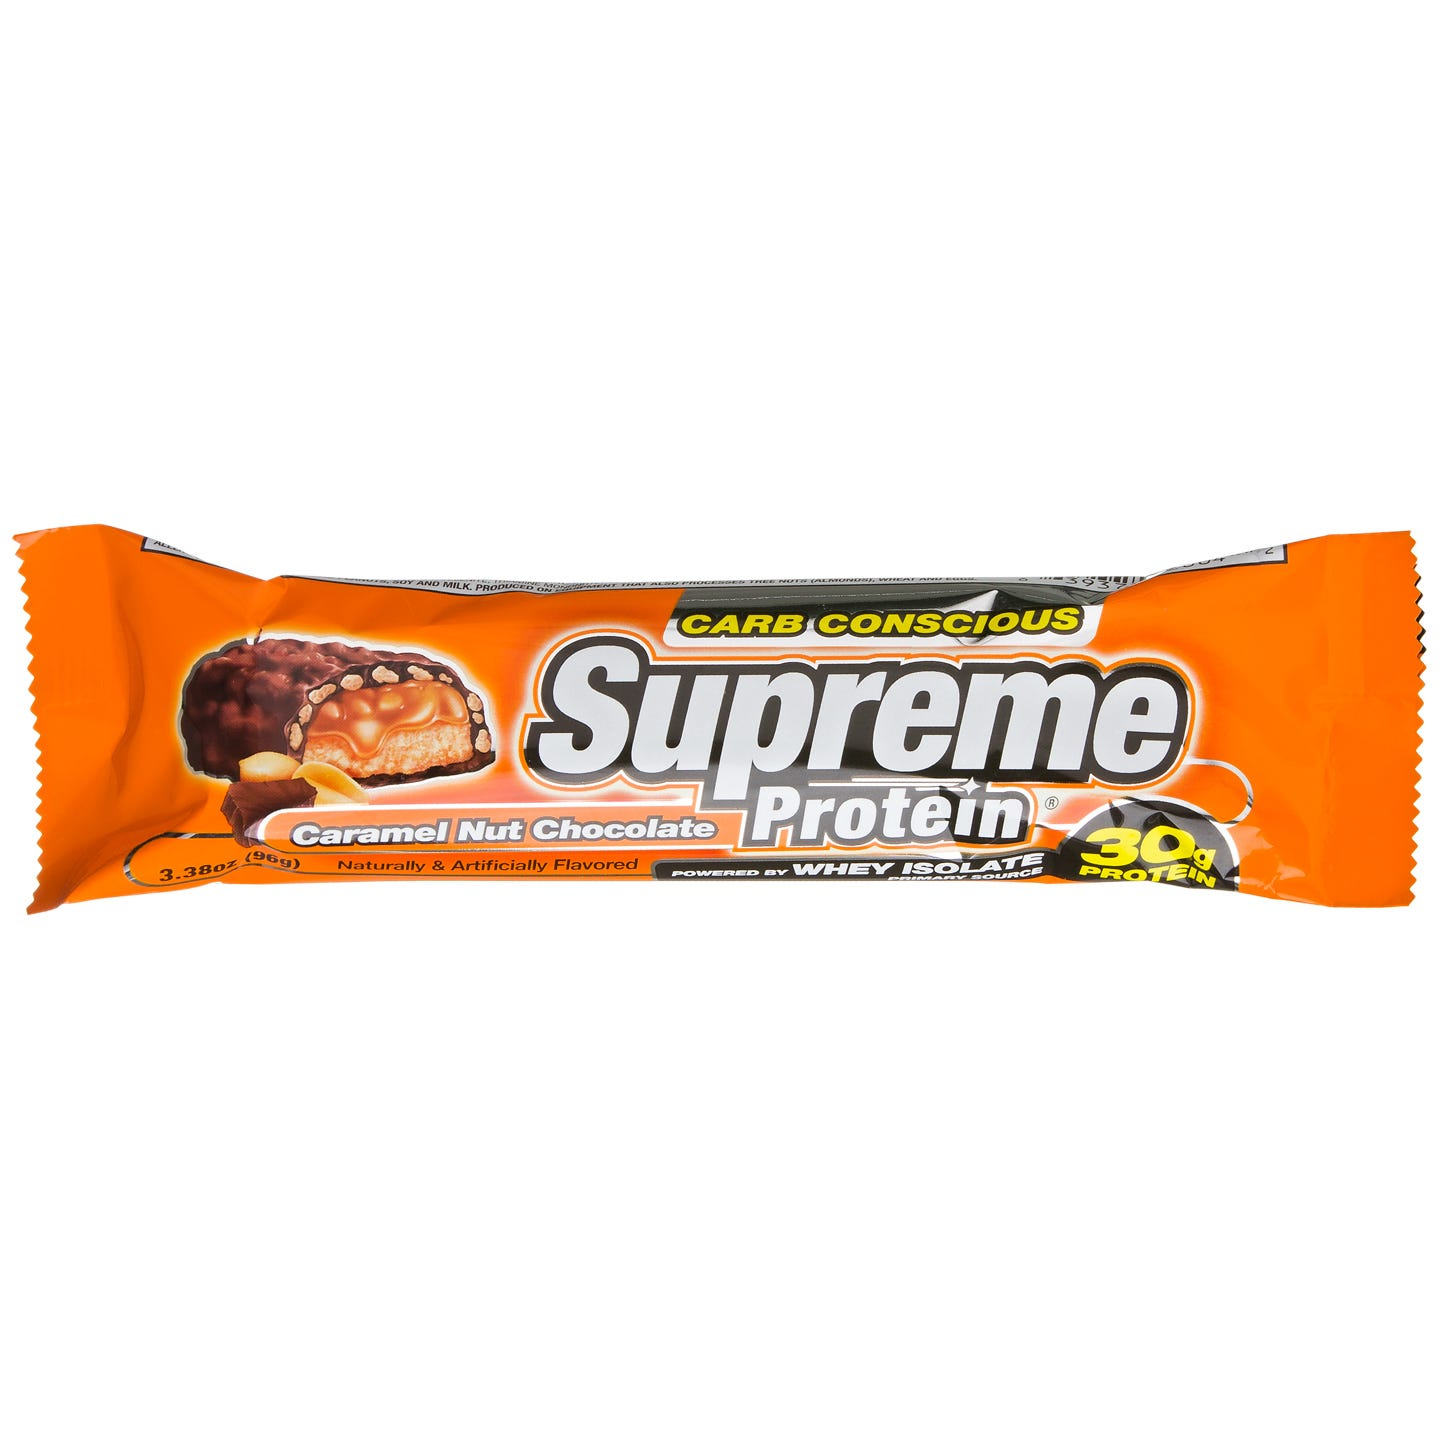 Supreme Protein Quadruple Layer Protein Bar - Caramel Nut Chocolate CC